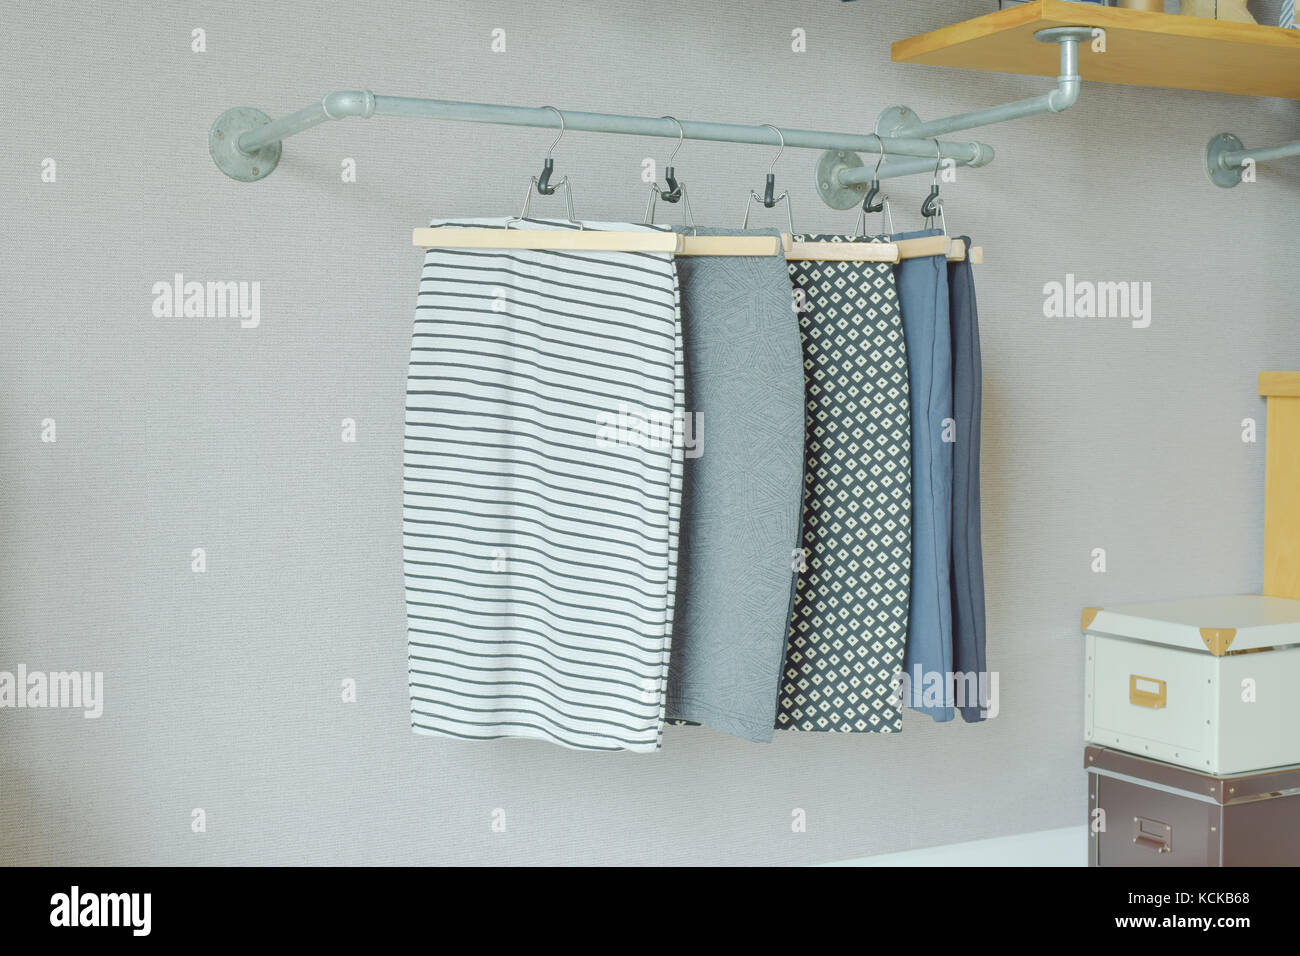 skirts hanging on industrial style clothes rail in walk in closet - Stock Image